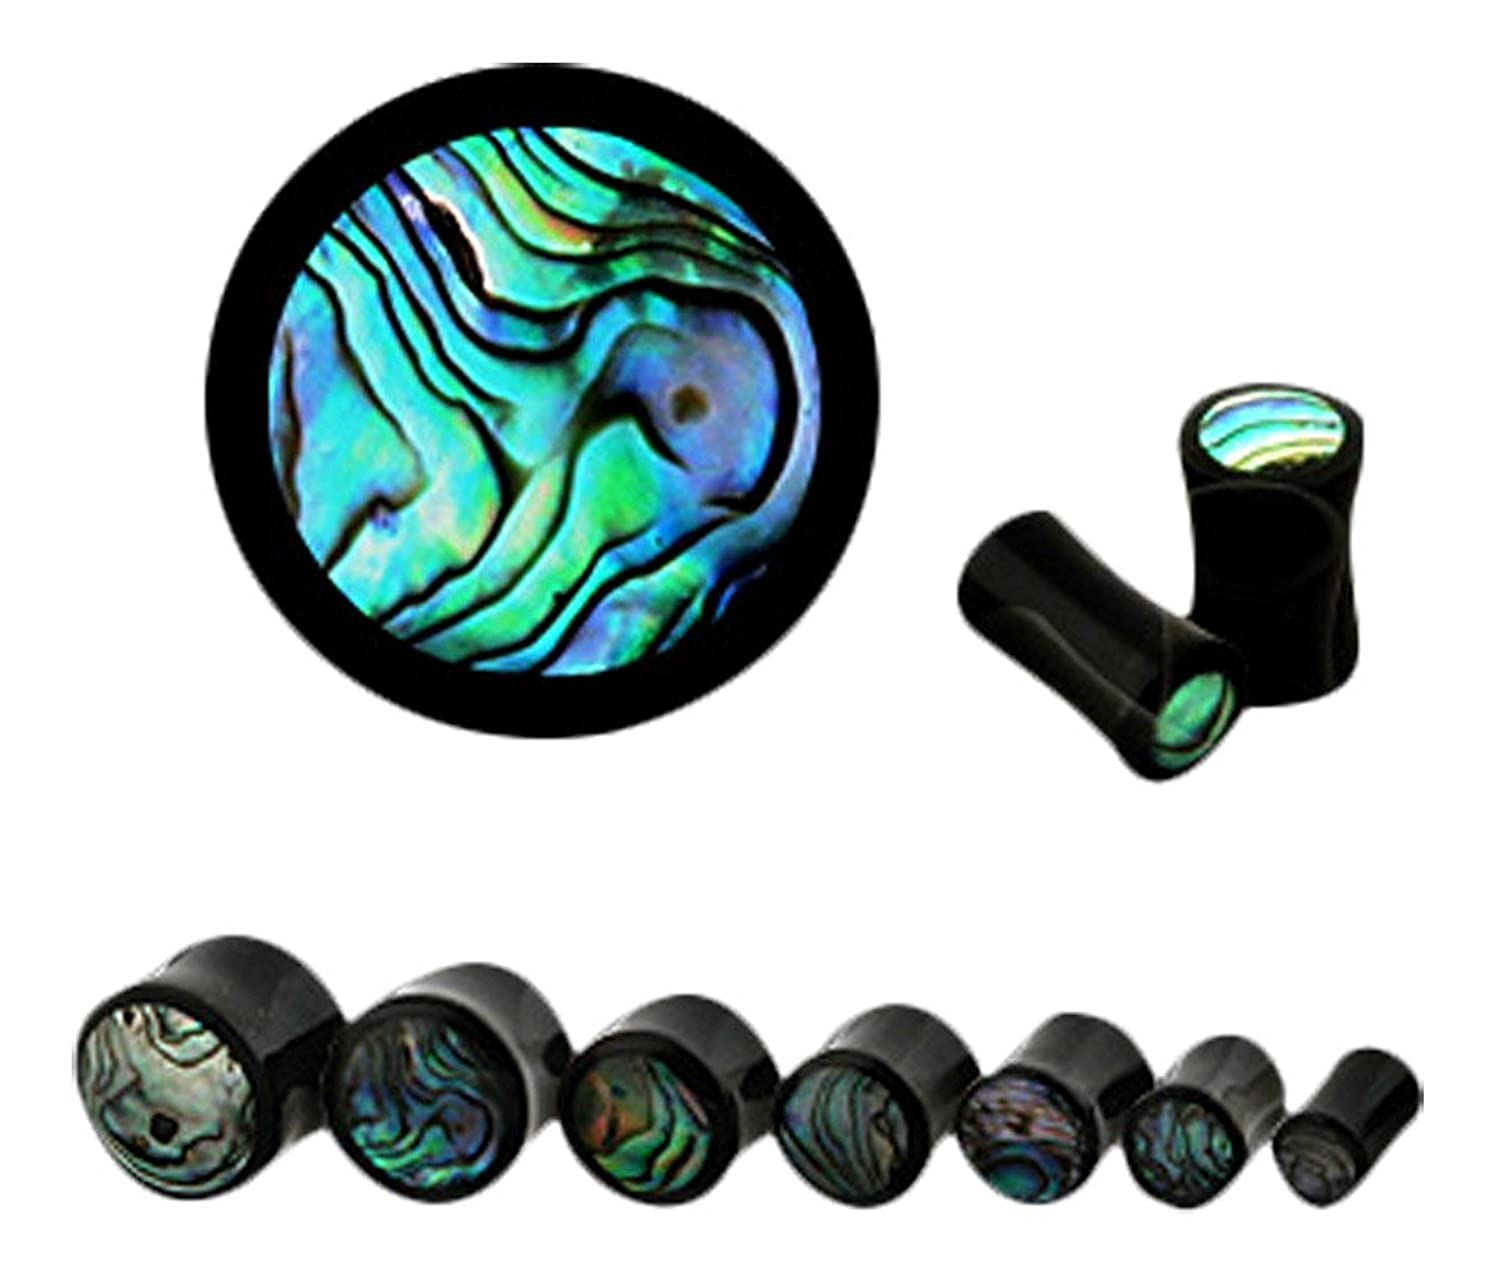 Amazon.com: Abalone Inlay Orgánica Cuerno Saddle Fit ...